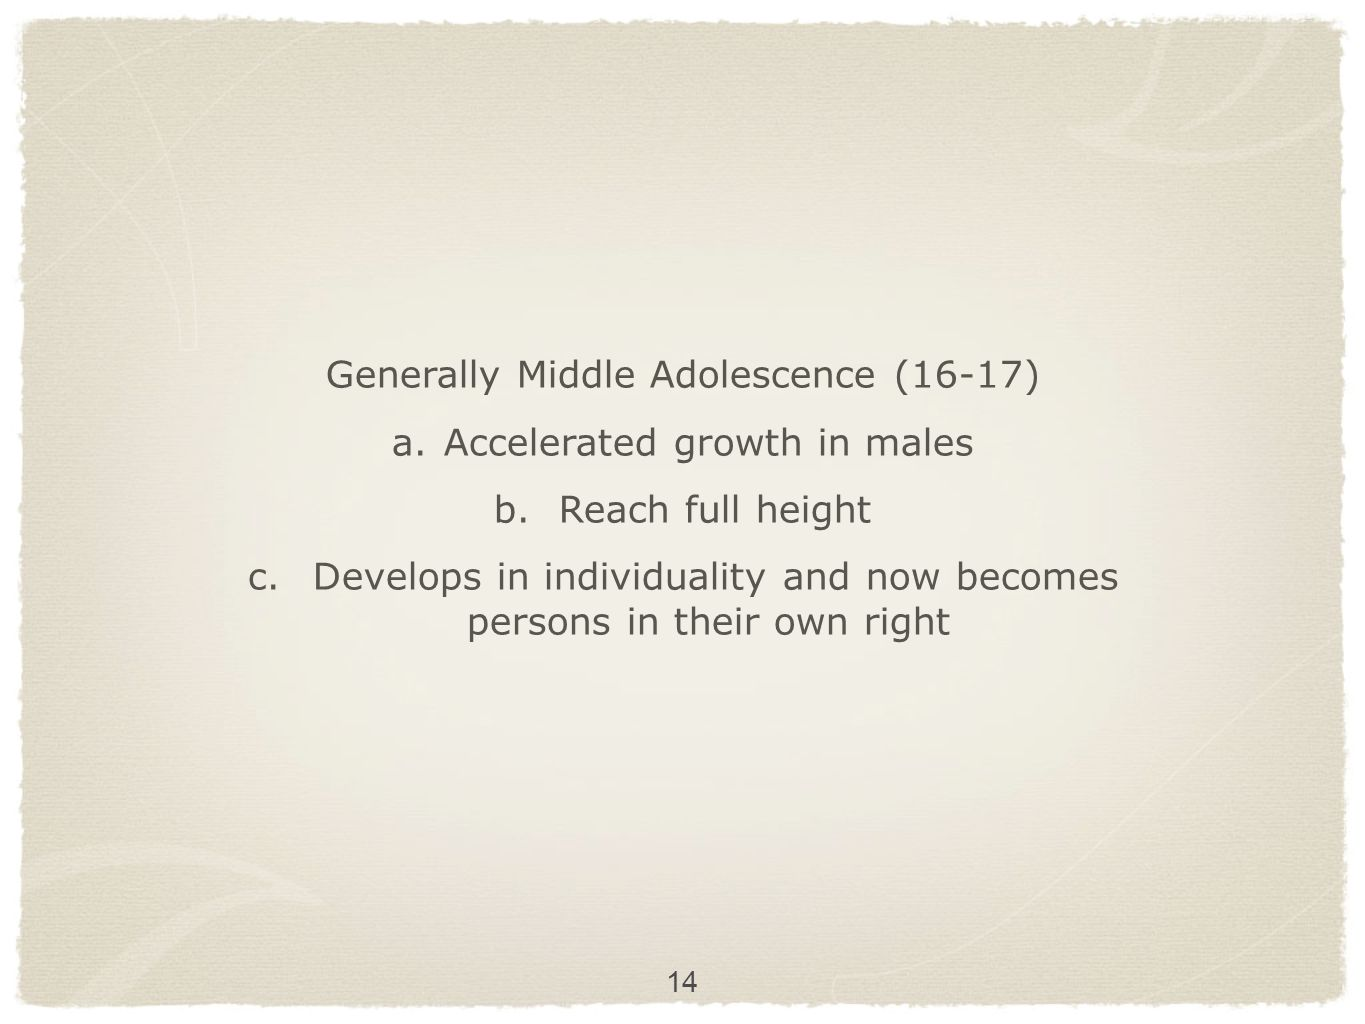 Generally Middle Adolescence (16-17) Accelerated growth in males